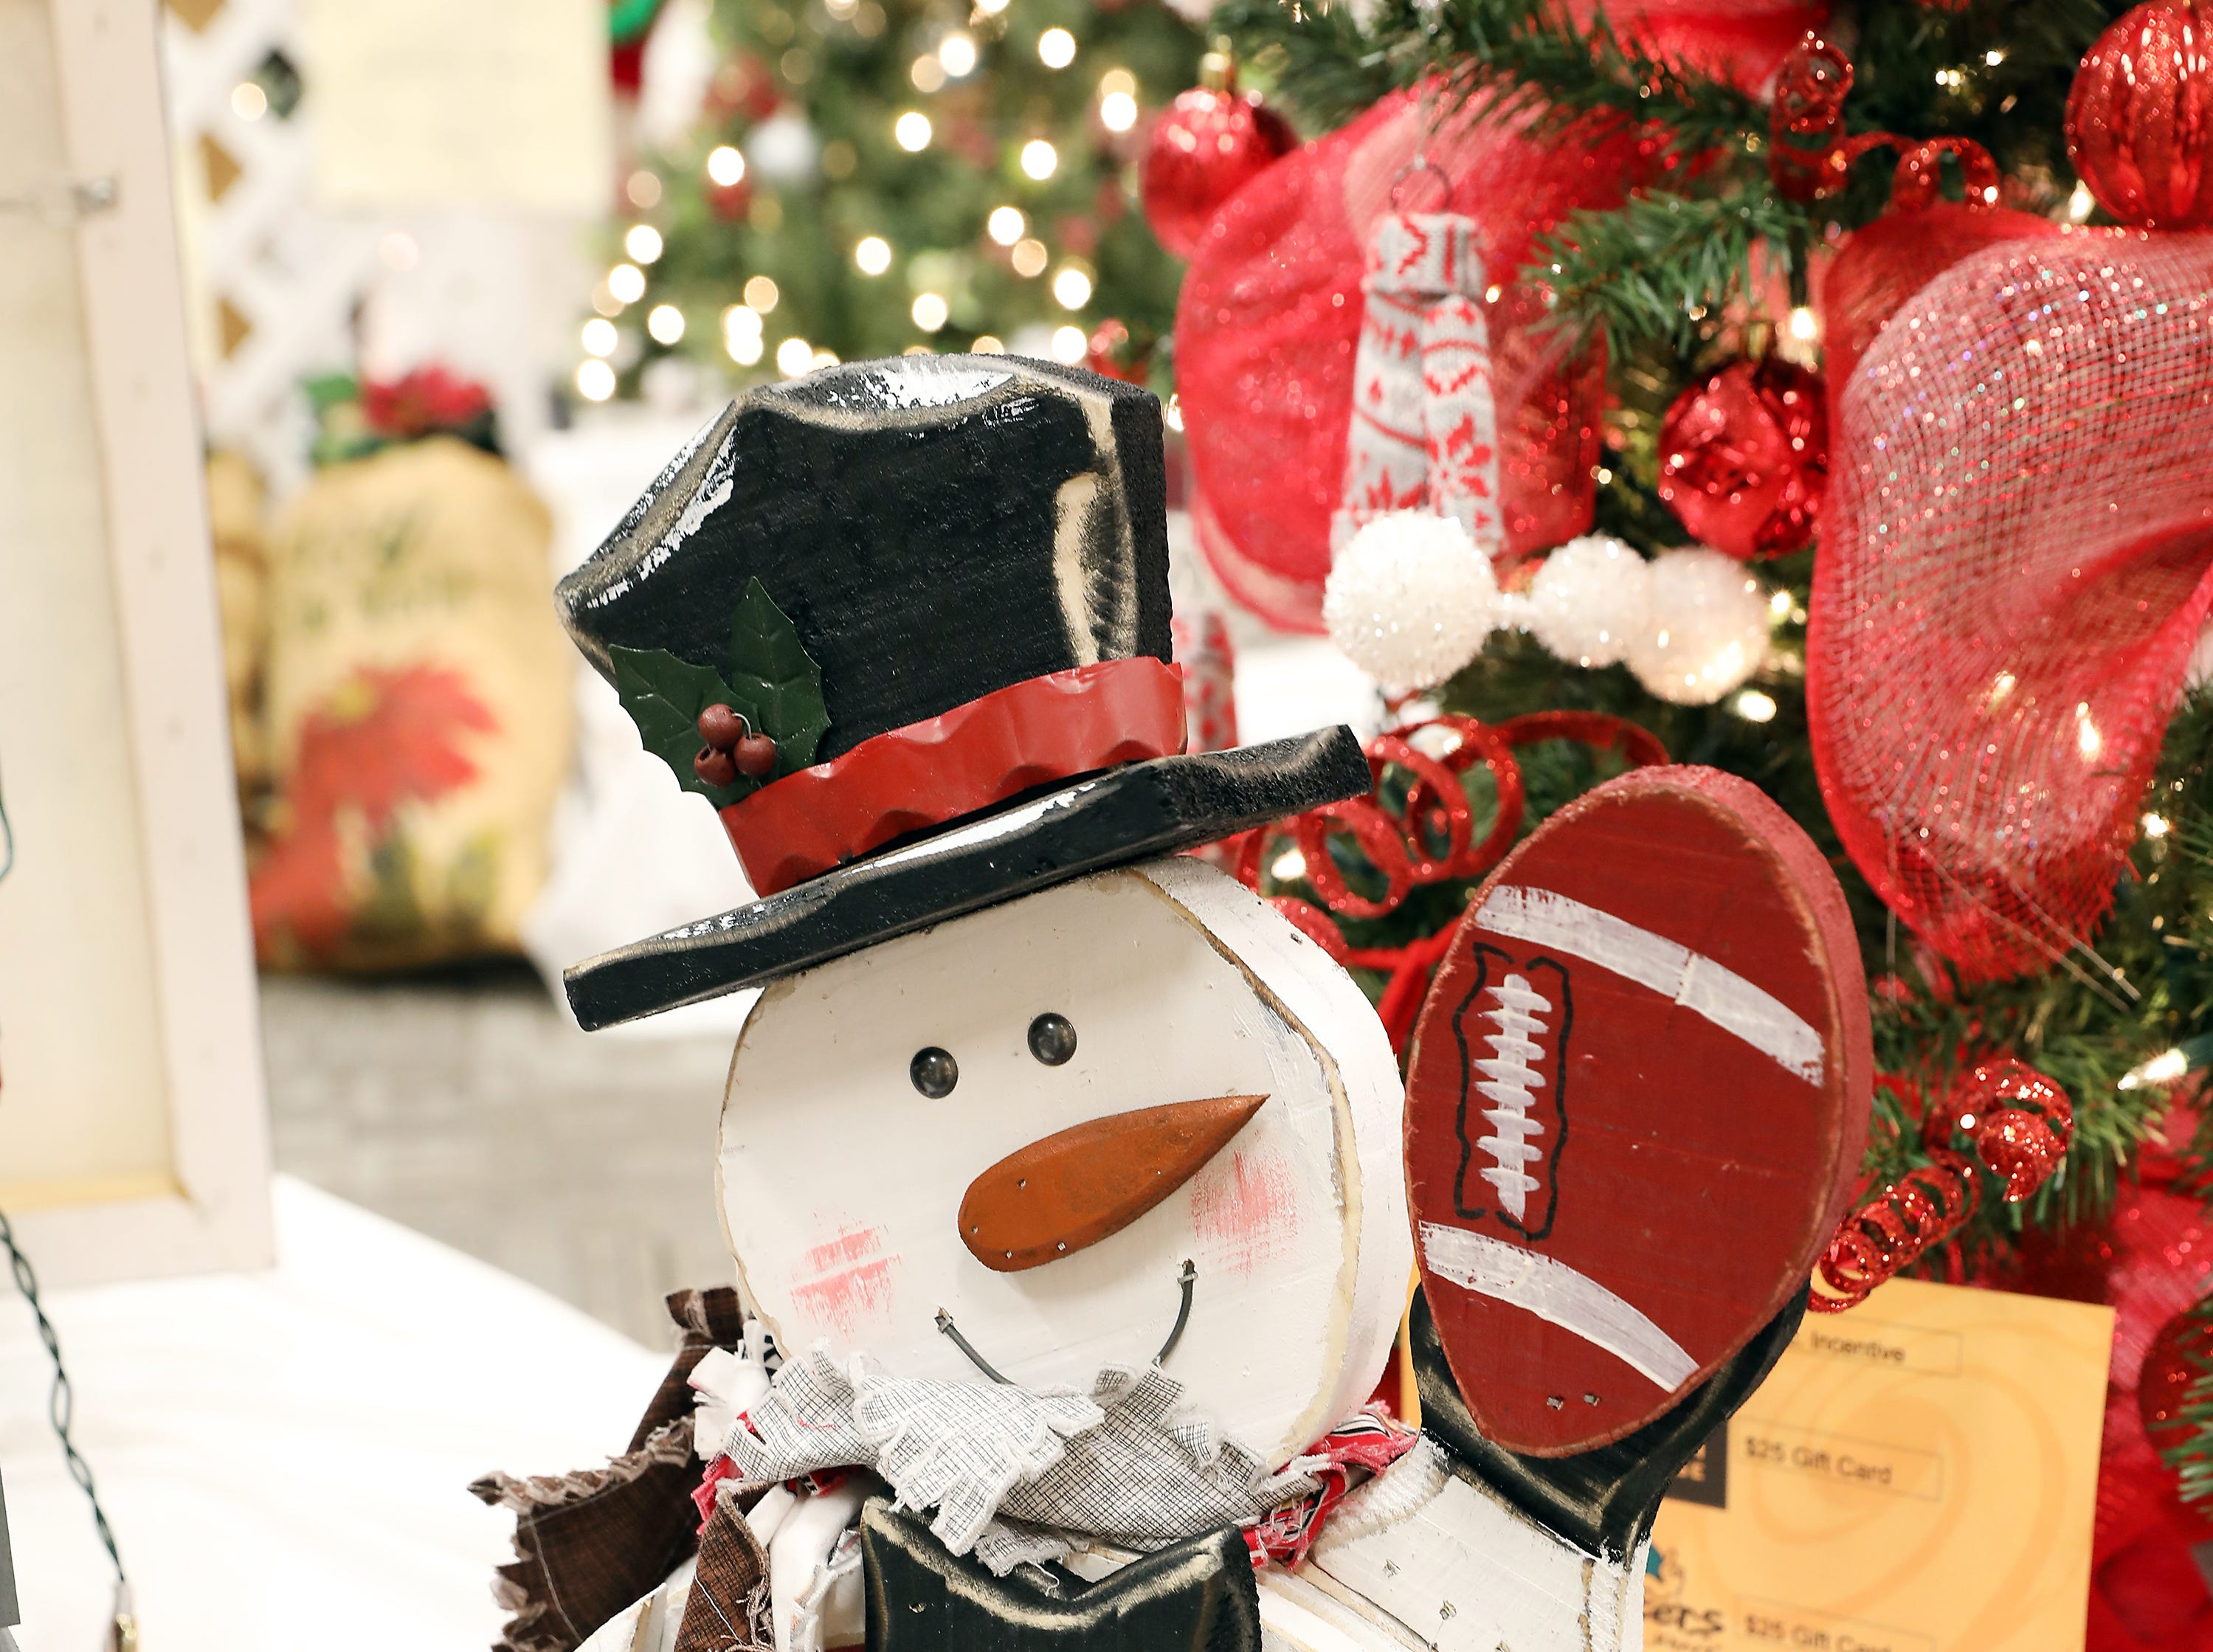 166	3:30 PM	The Forker Company	Other	Buckeye Snowman	OSU wooden snowman with patchwork scarf.		Ohio Stadium Tour.  A Behind the scenes tour of the Shoe!  Up to 10 people, tour lasts about 1 1/2 hours.